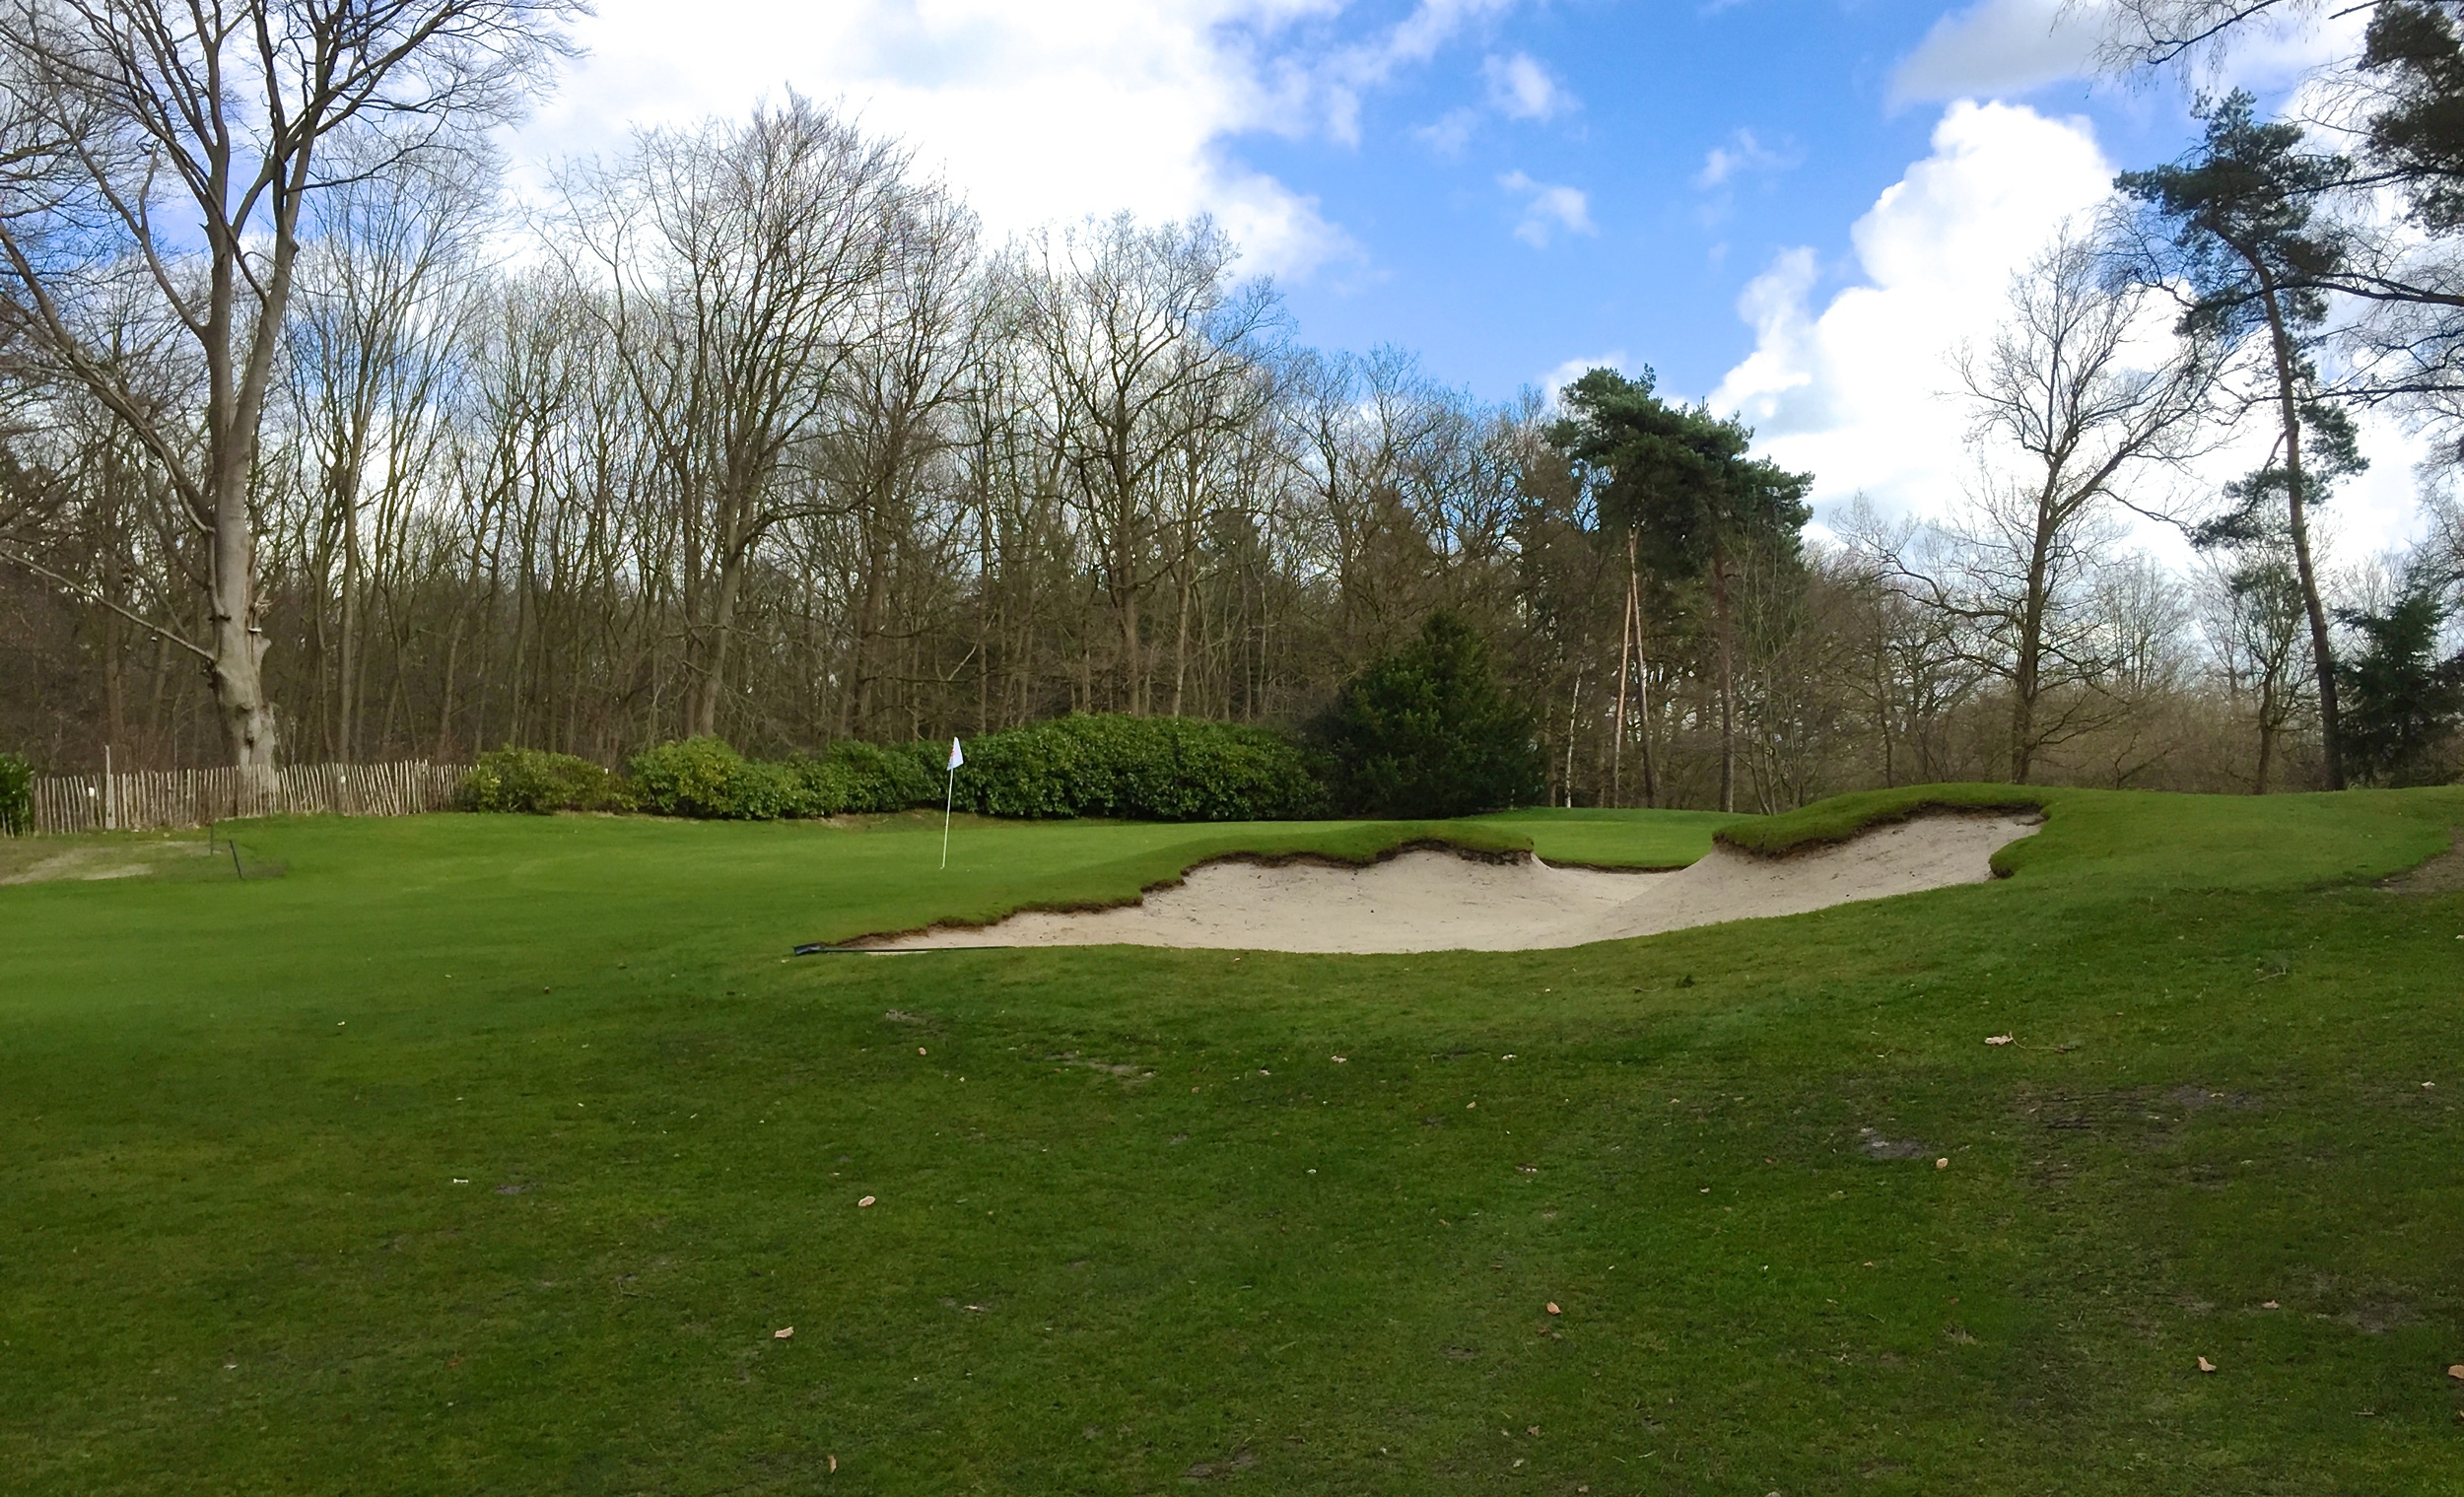 The 10th hole bunker up close.